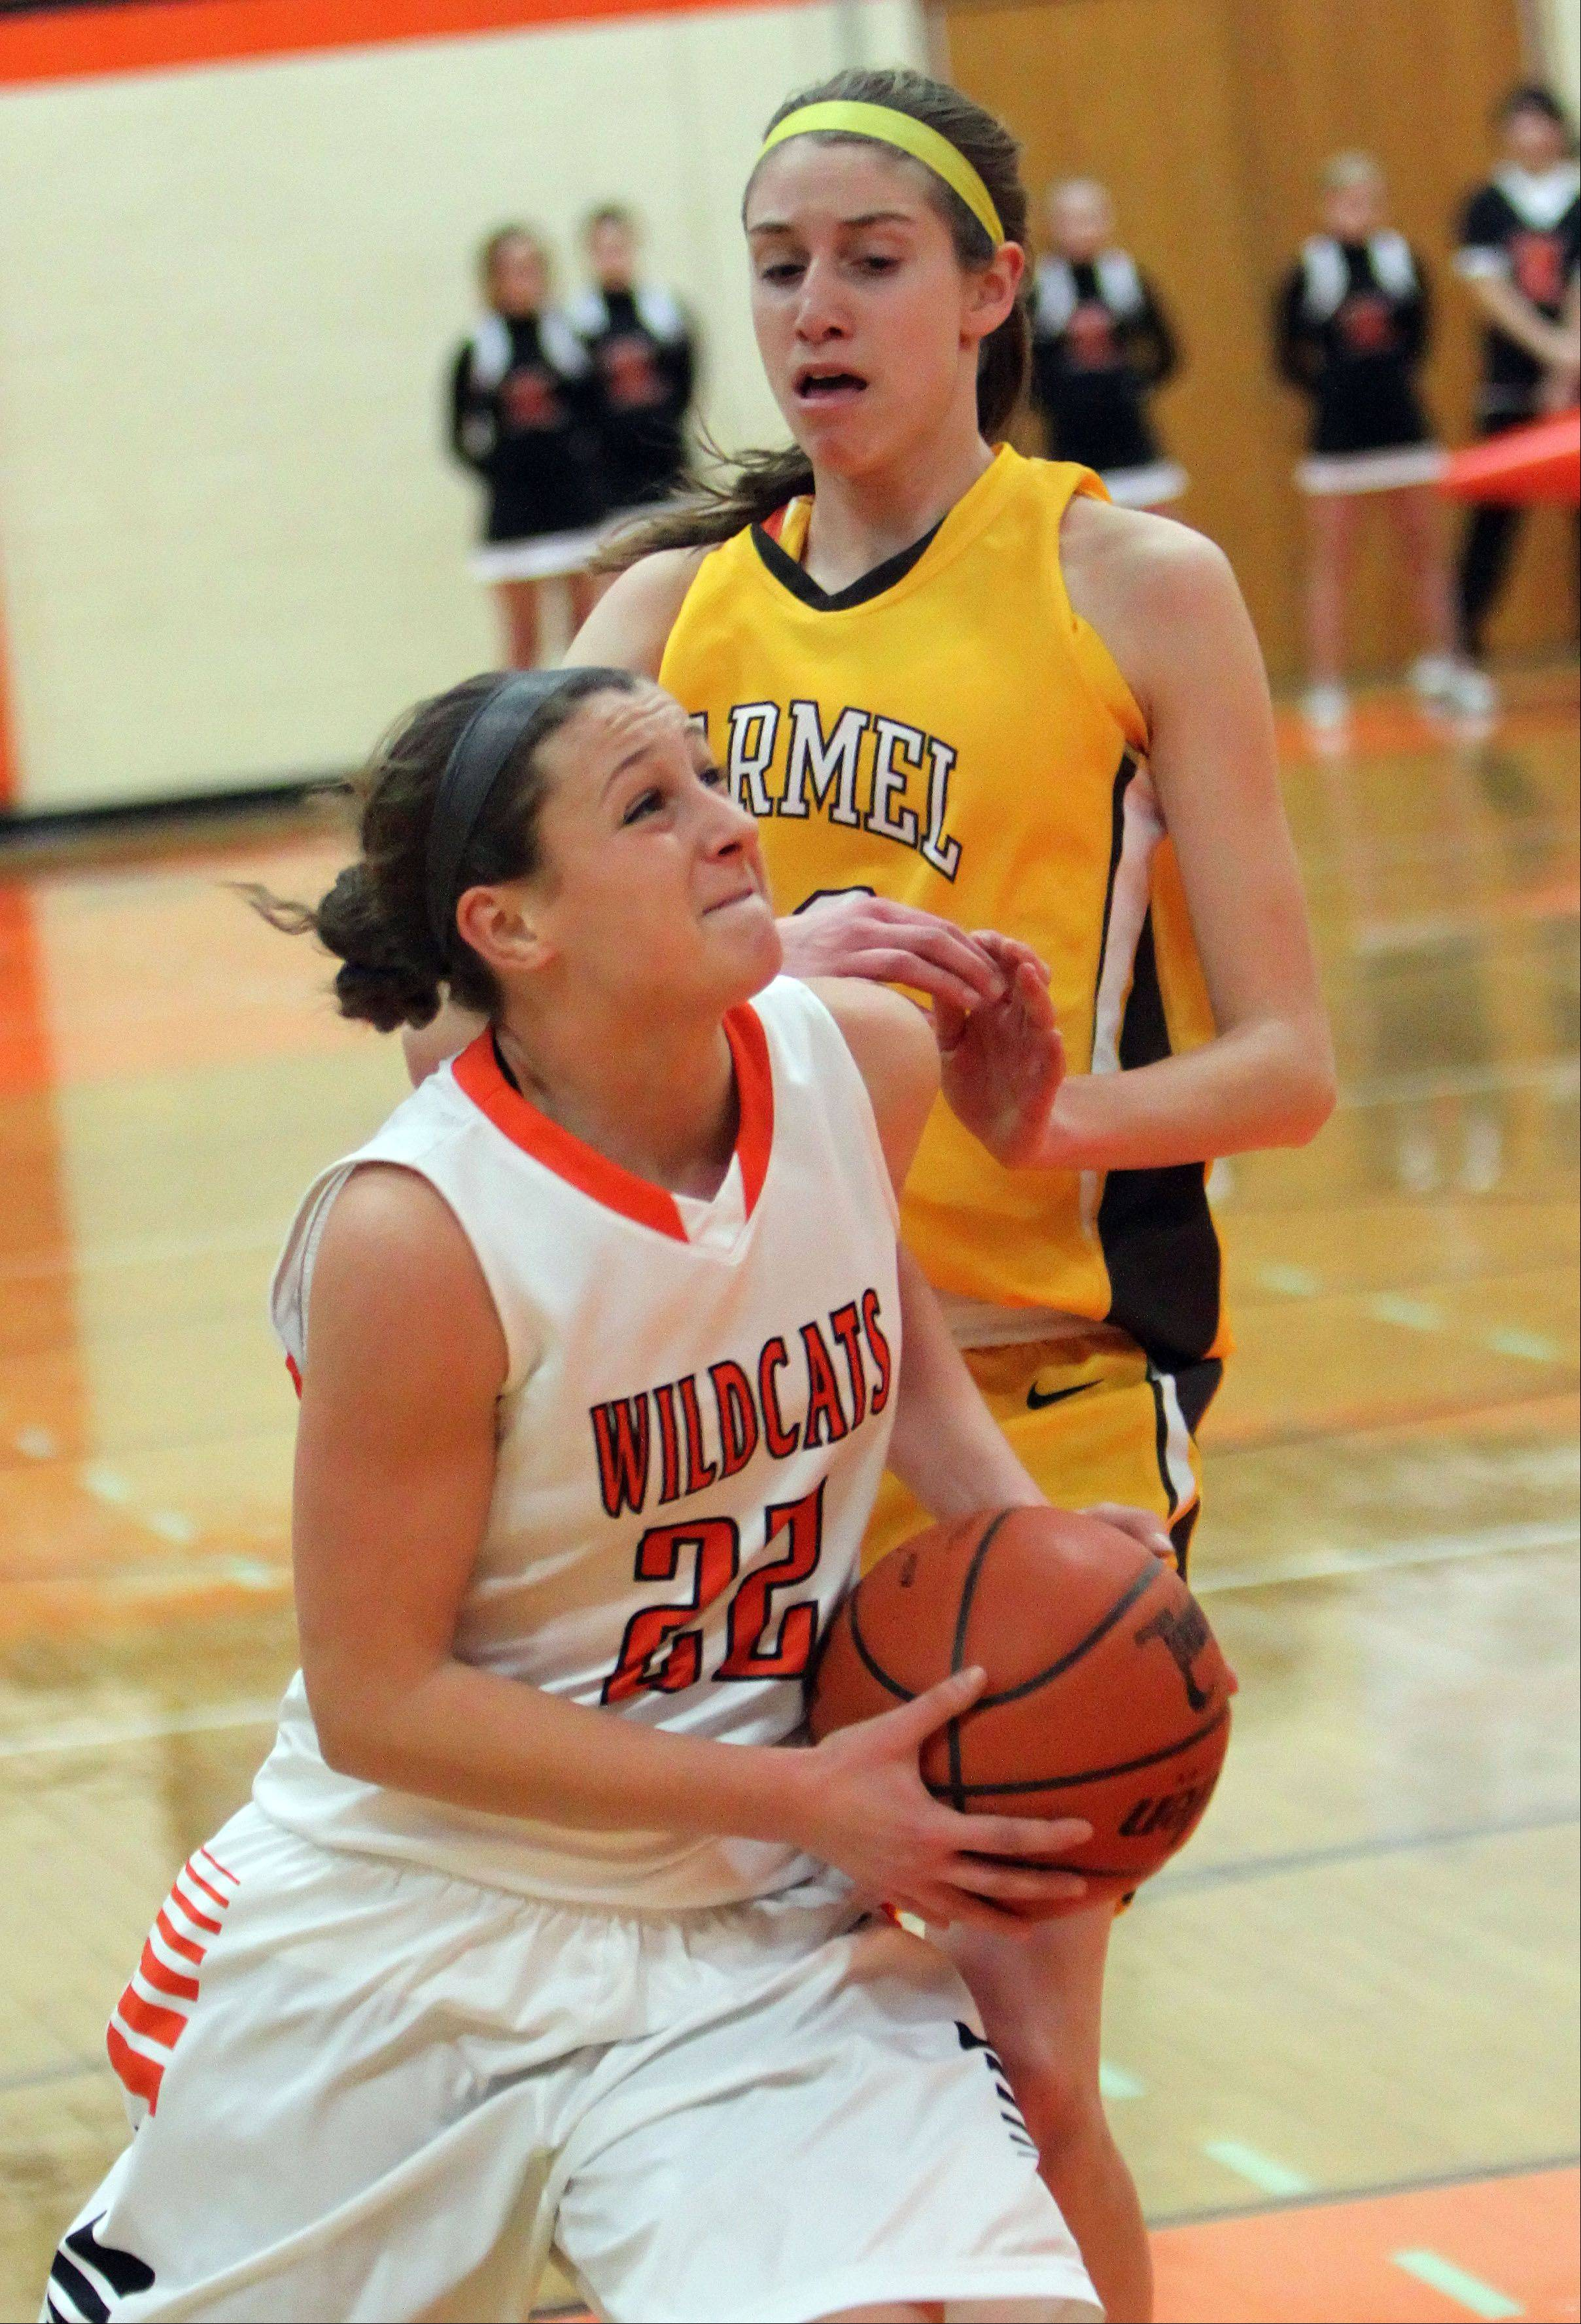 Libertyville's Olivia Mayer, left, drives on Carmel's Claire Ogrinc.